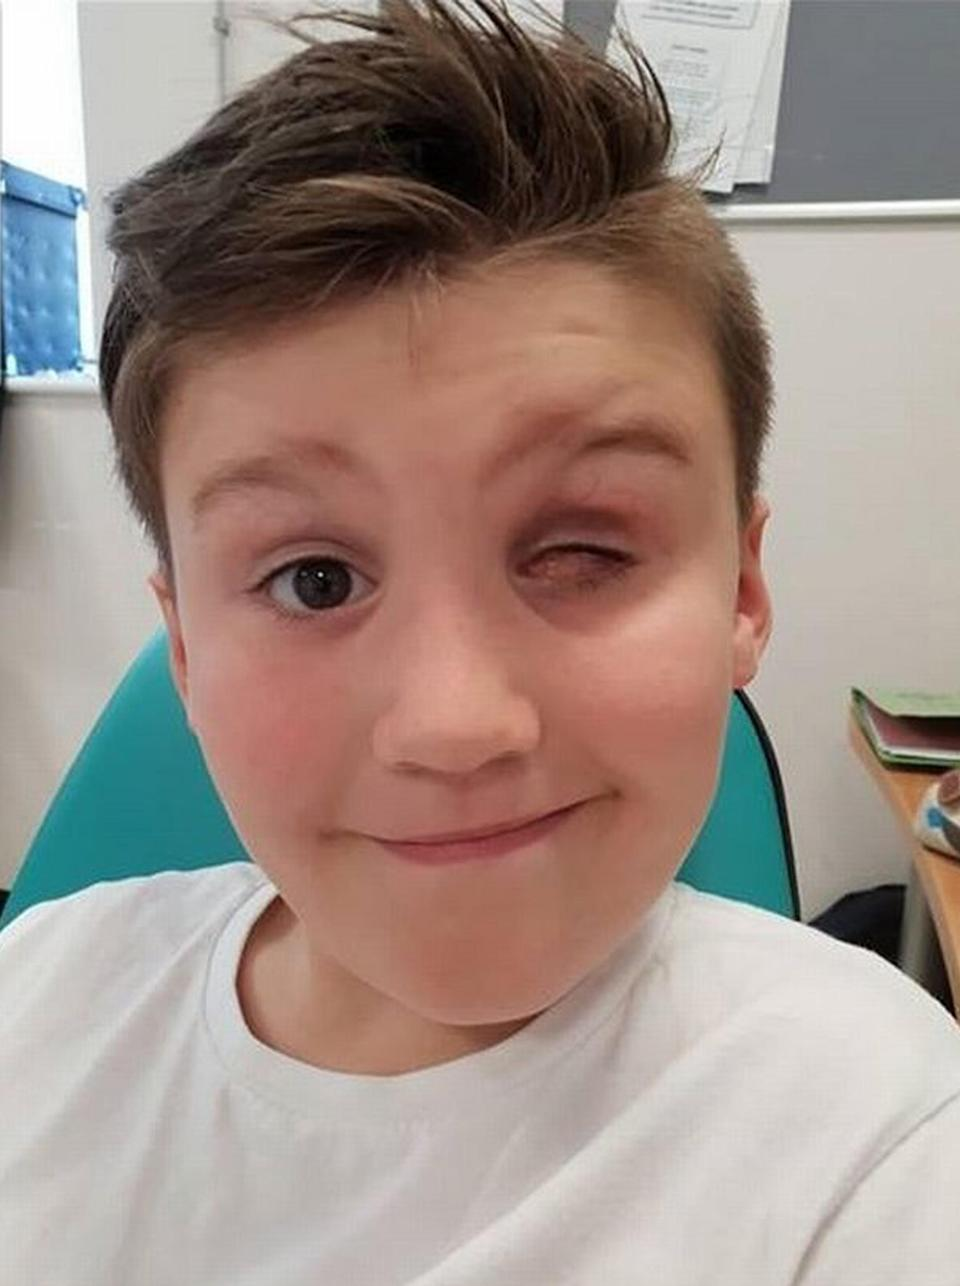 Nerf gun accident: Taylor-Jay Ravicini, 9, (pictured) from Swansea, South Wales lost is eye after a Nerf gun accident.